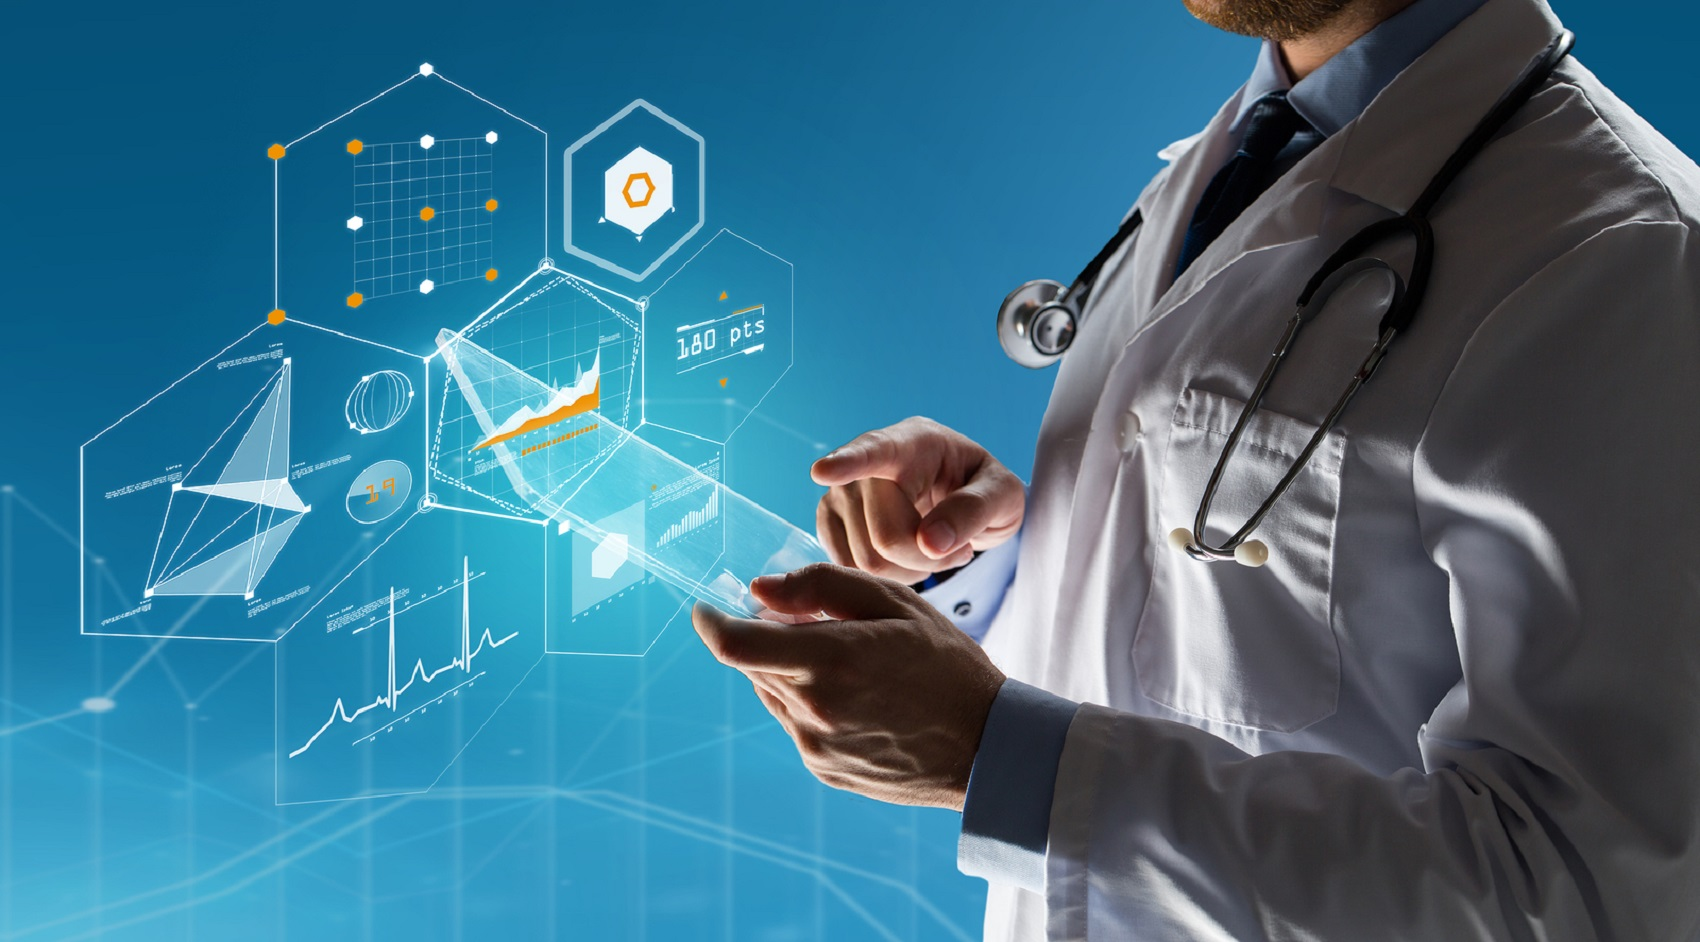 Digitally Transforming Healthcare – One Business at a Time TechNative